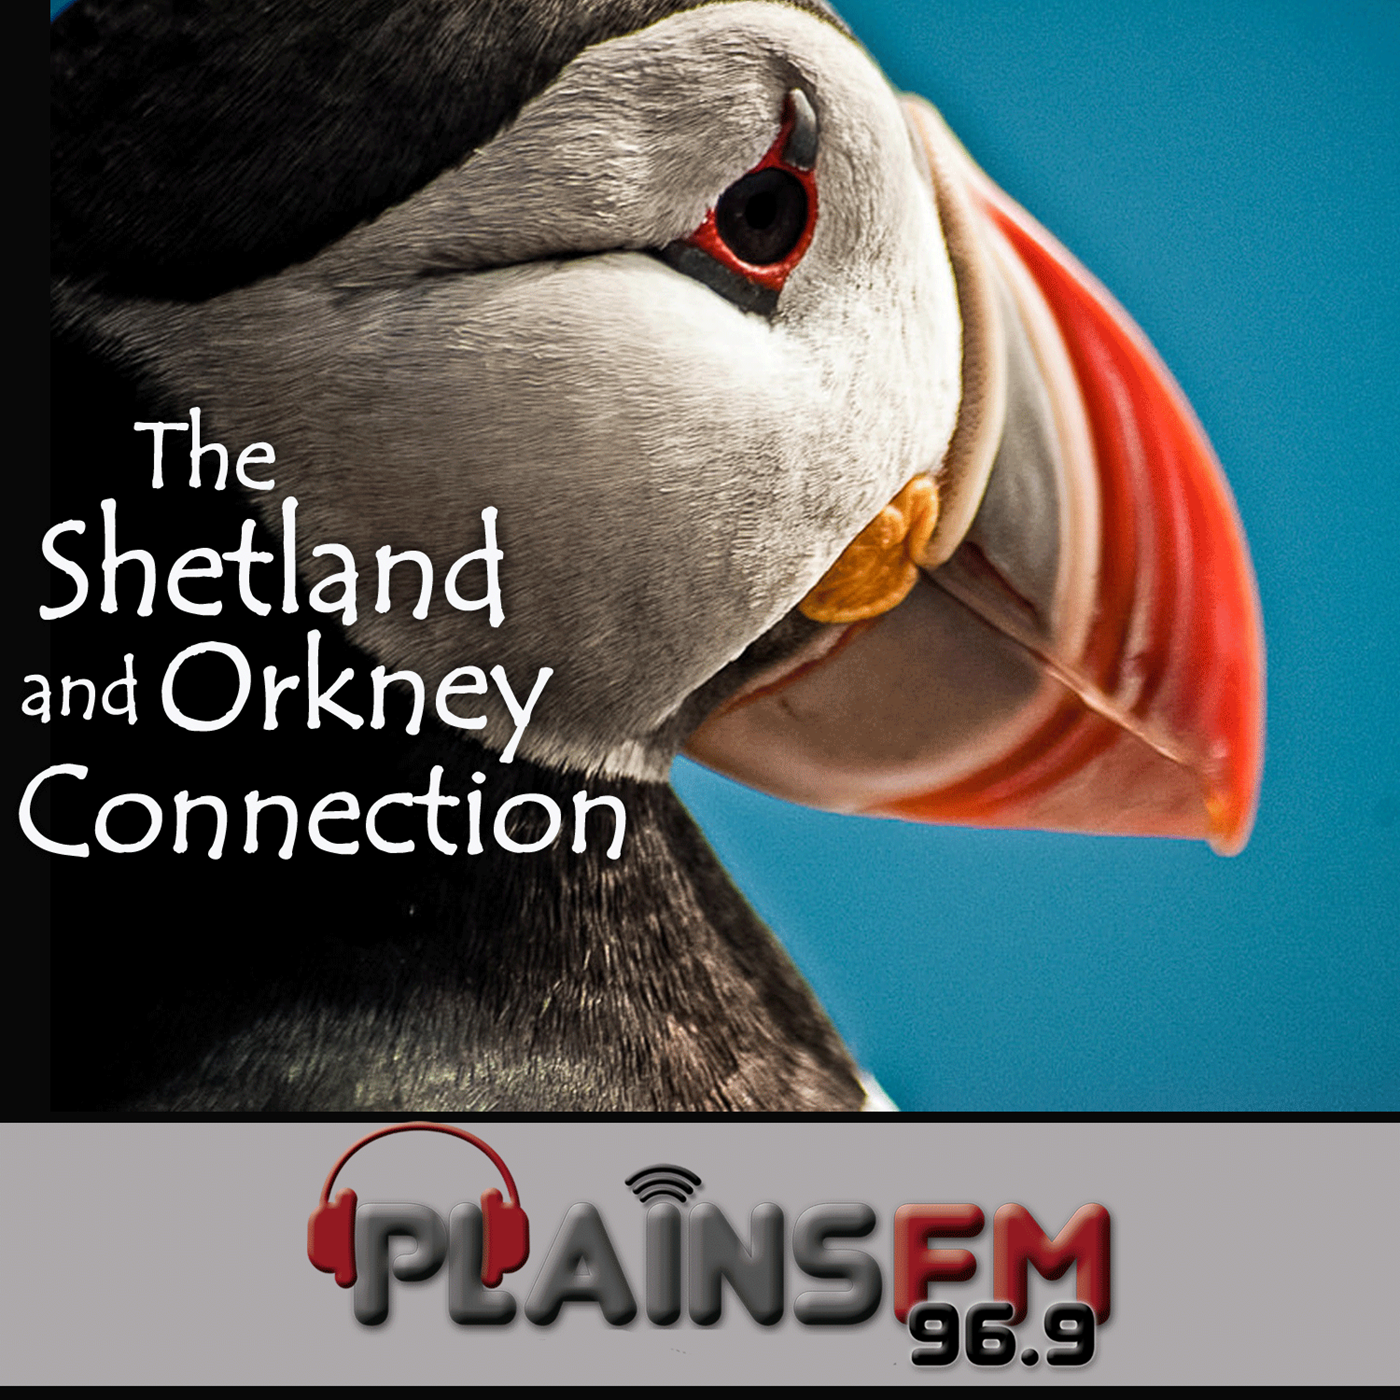 The Shetland and Orkney Connection